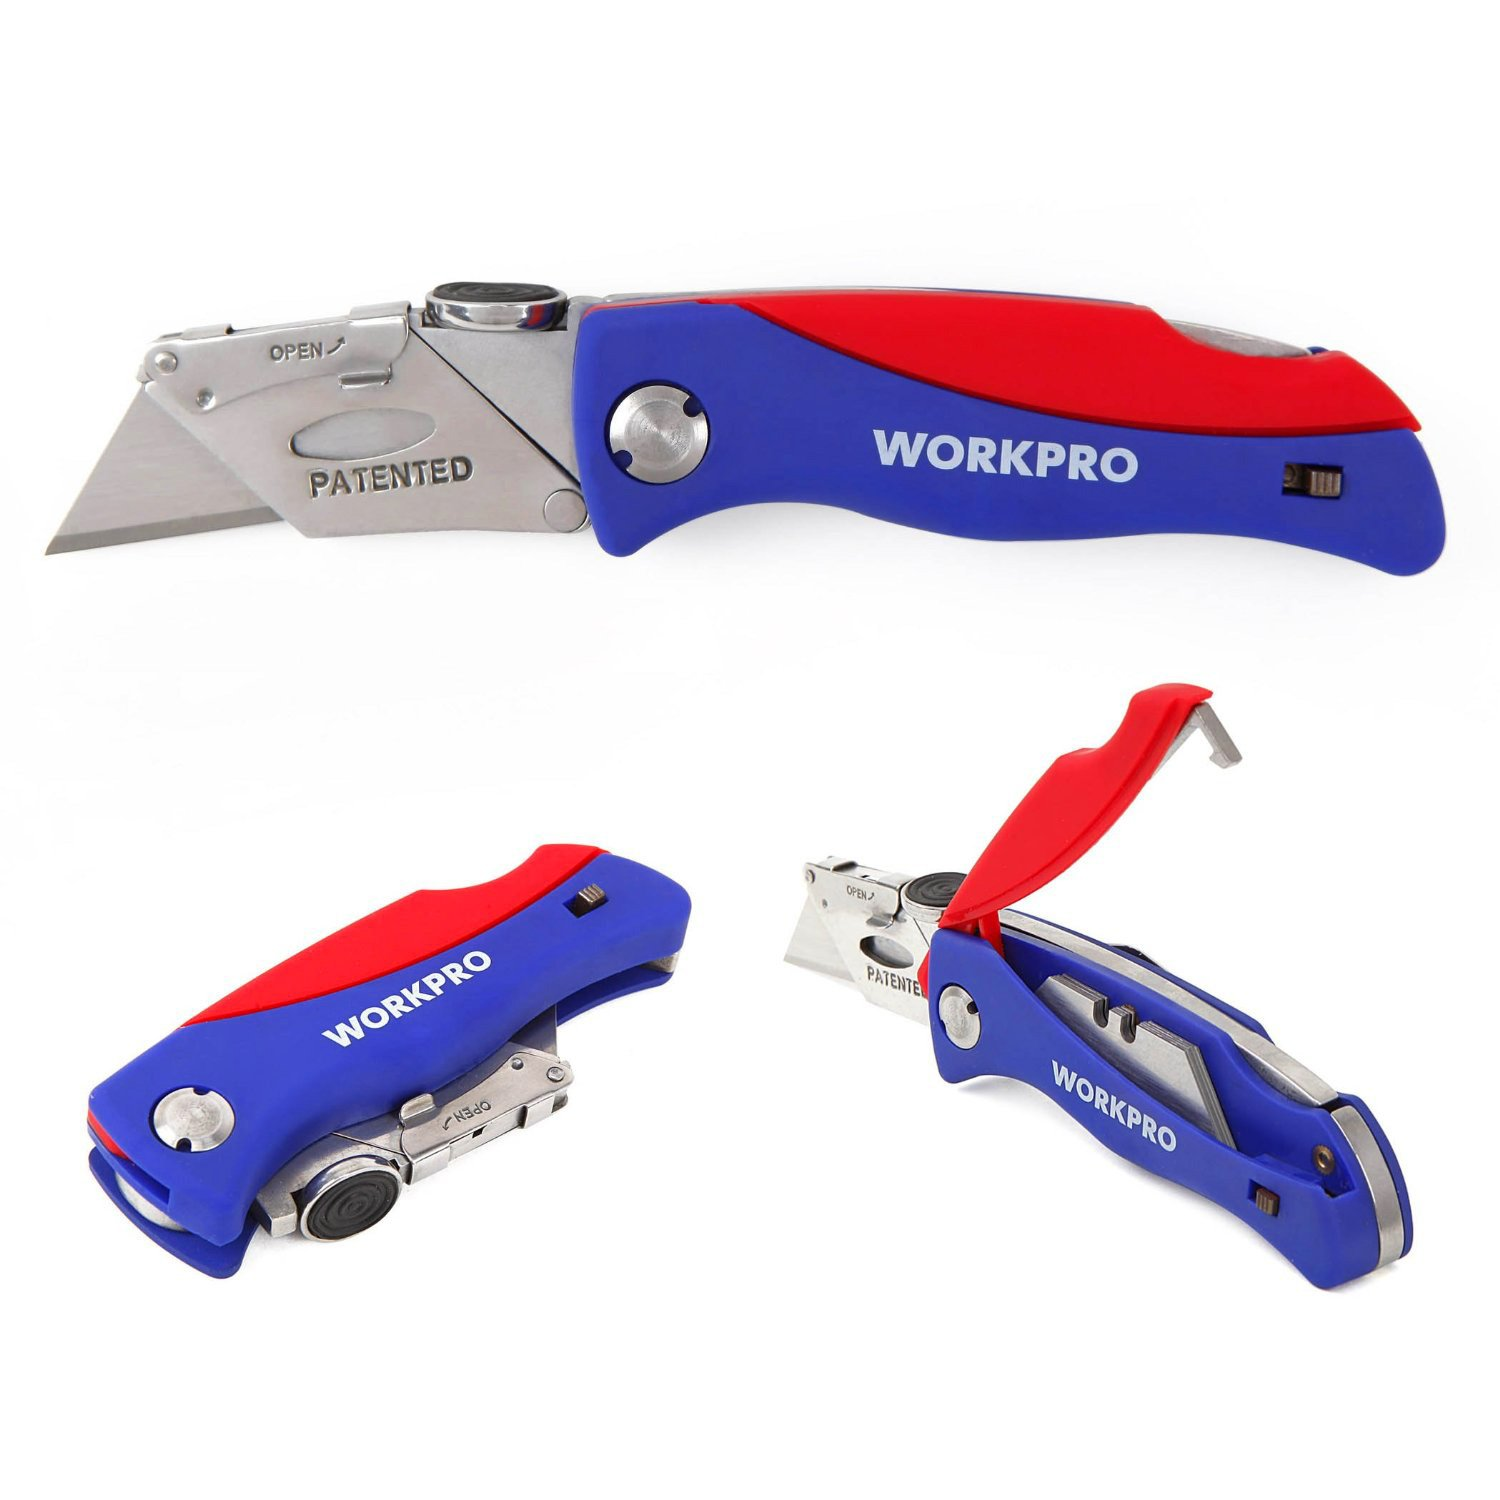 WORKPRO Folding Utility Knife Quick-change Box Cutter, Blade Storage in Handle with 5 Extra Blades Included